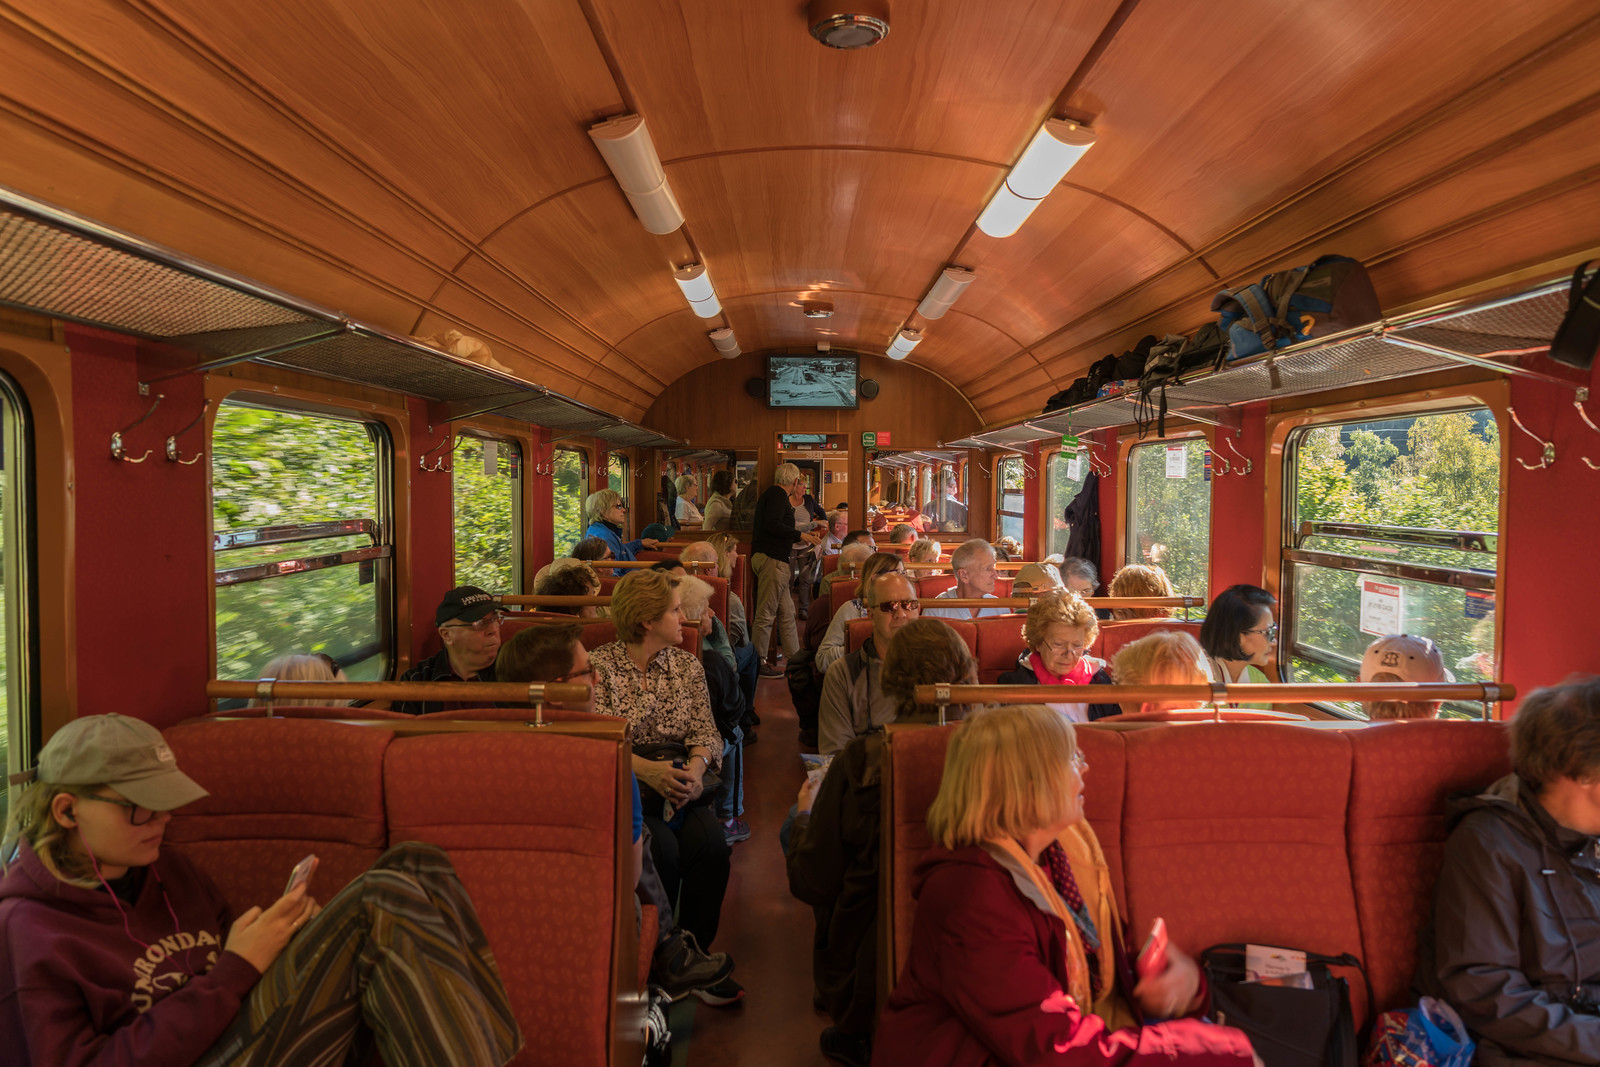 Traveling in comfort and style on the Flam Railway